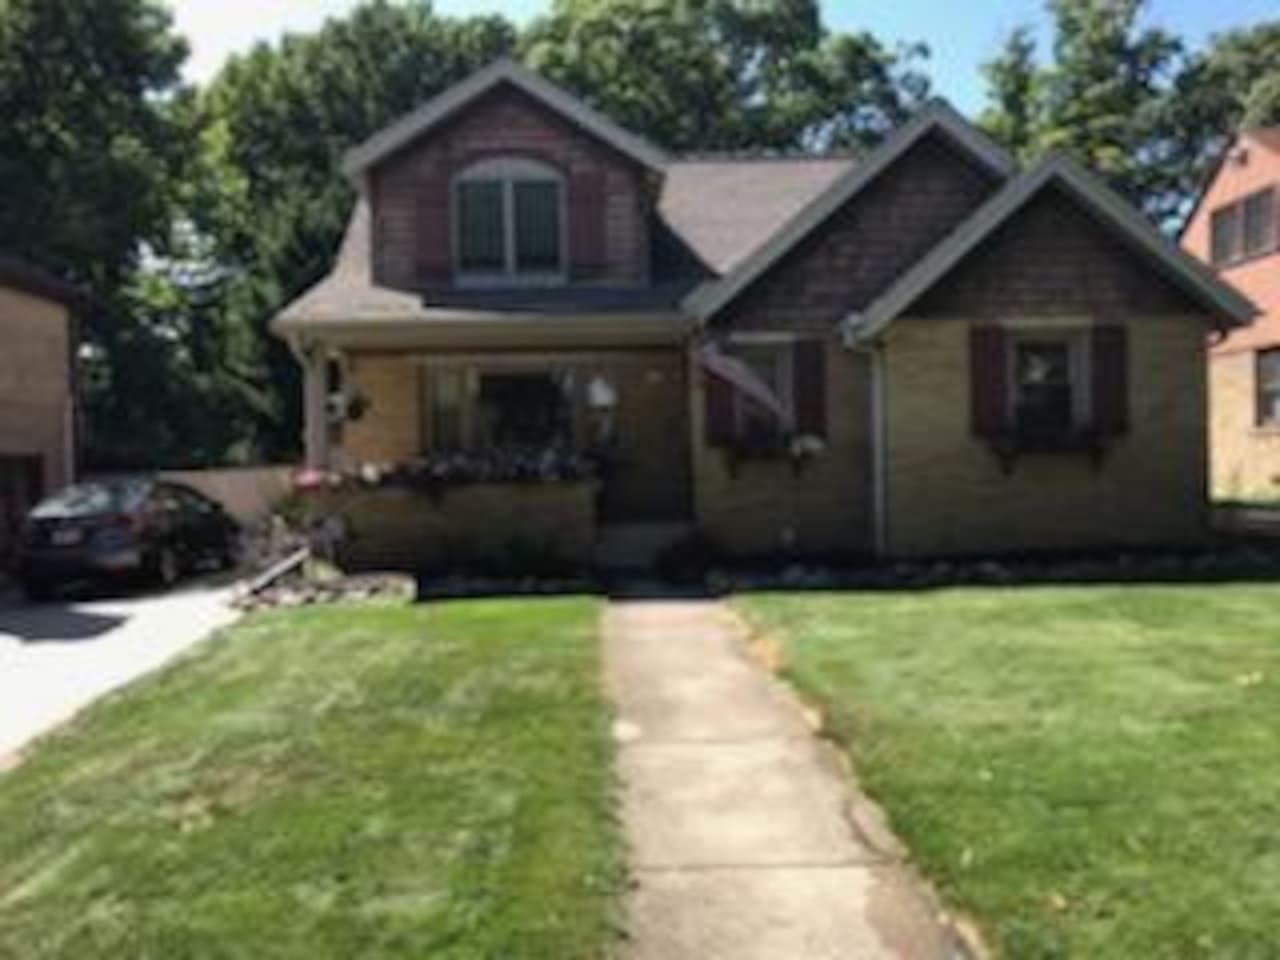 A very nice and classic home with 5 rooms that could be slept in.  About 45 seconds from I-94 and just minutes to downtown. Plenty of parking too.